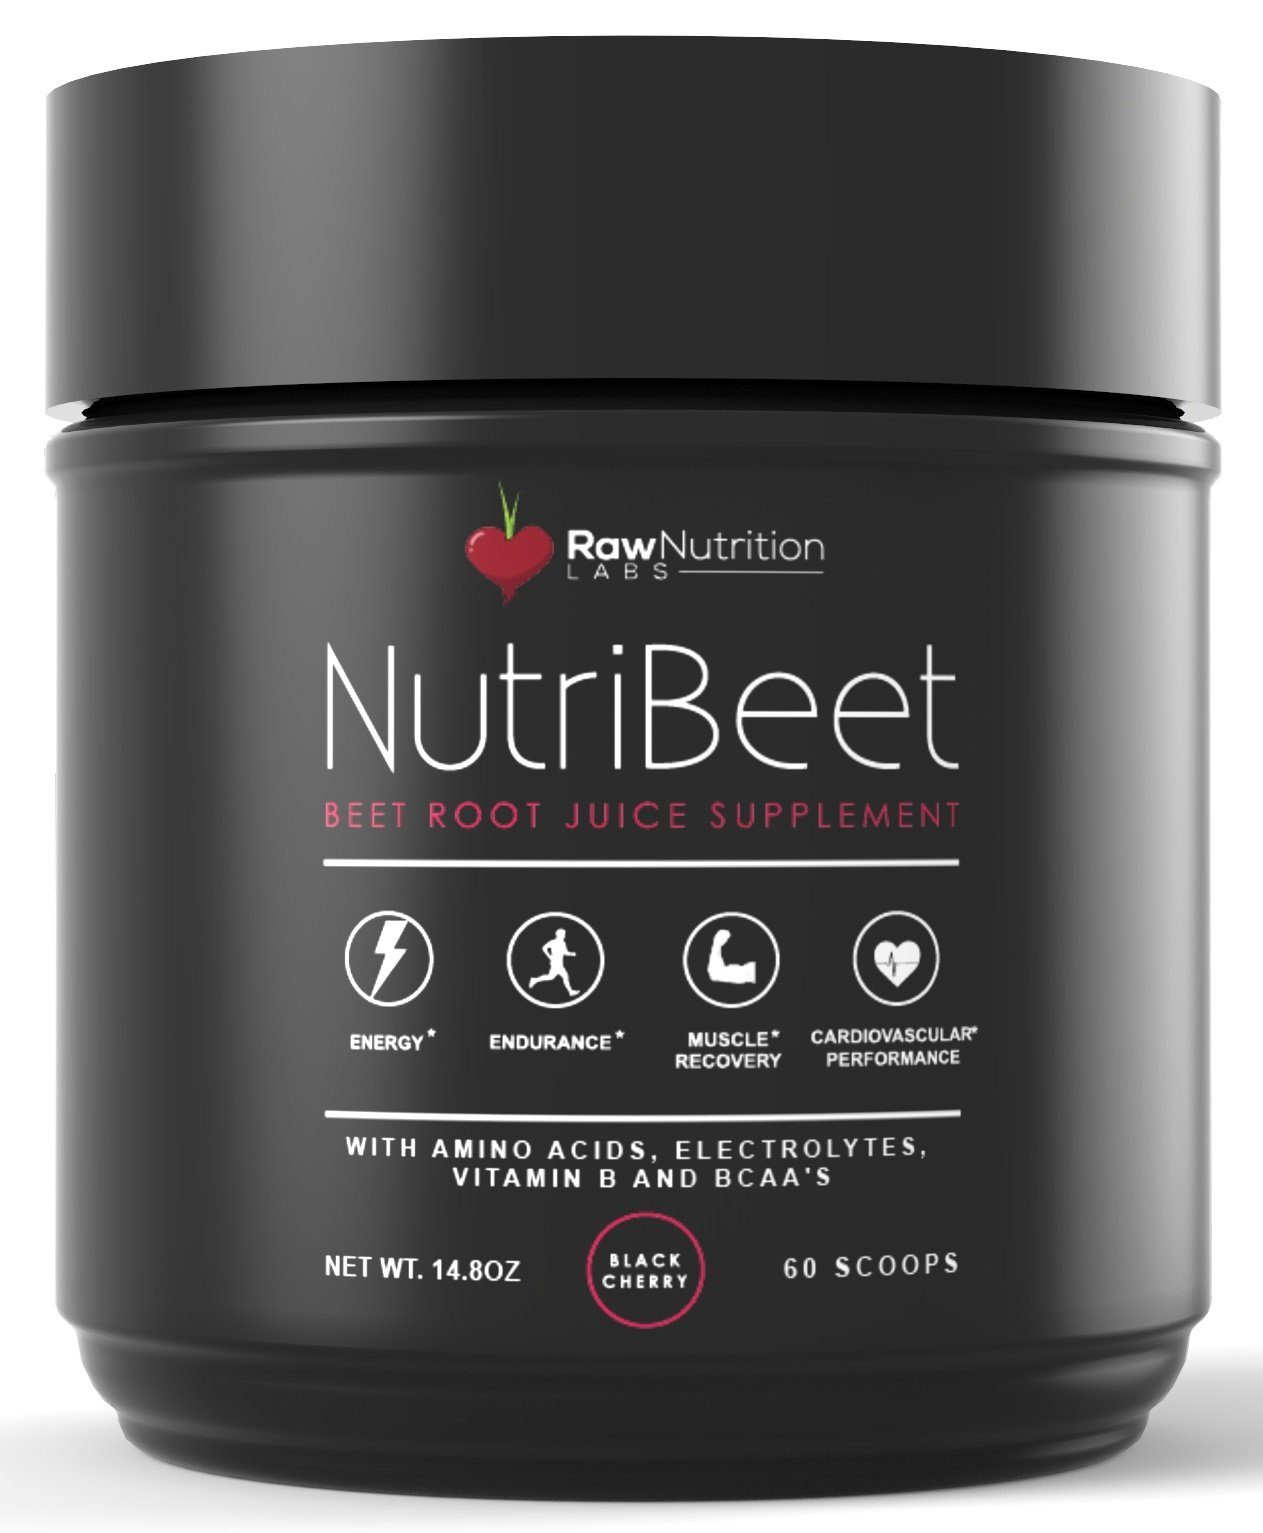 Raw Nutrition Labs NutriBeet Nitric Oxide Optimizer Organic Beet Root Juice Powder with Amino Nitrate Matrix, Electrolytes, Vitamin B Energy Boost & BCAA Recovery Support (60 scoops), 14.8 oz